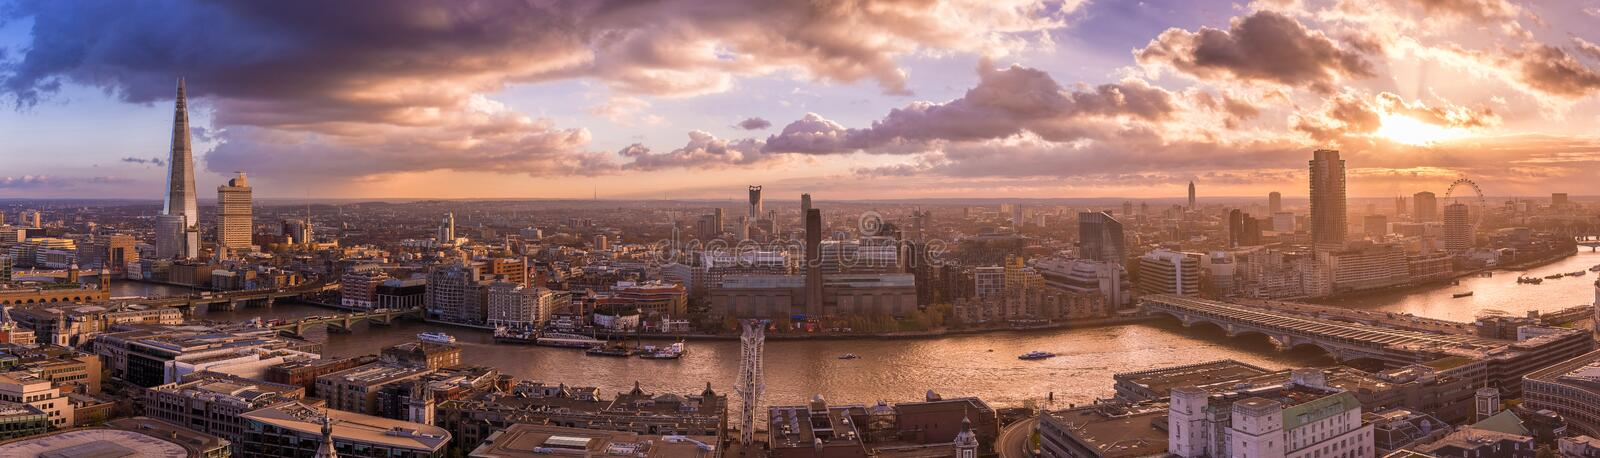 Panoramic skyline of south part of London with beautiful dramatic clouds and sunset - UK stock photo